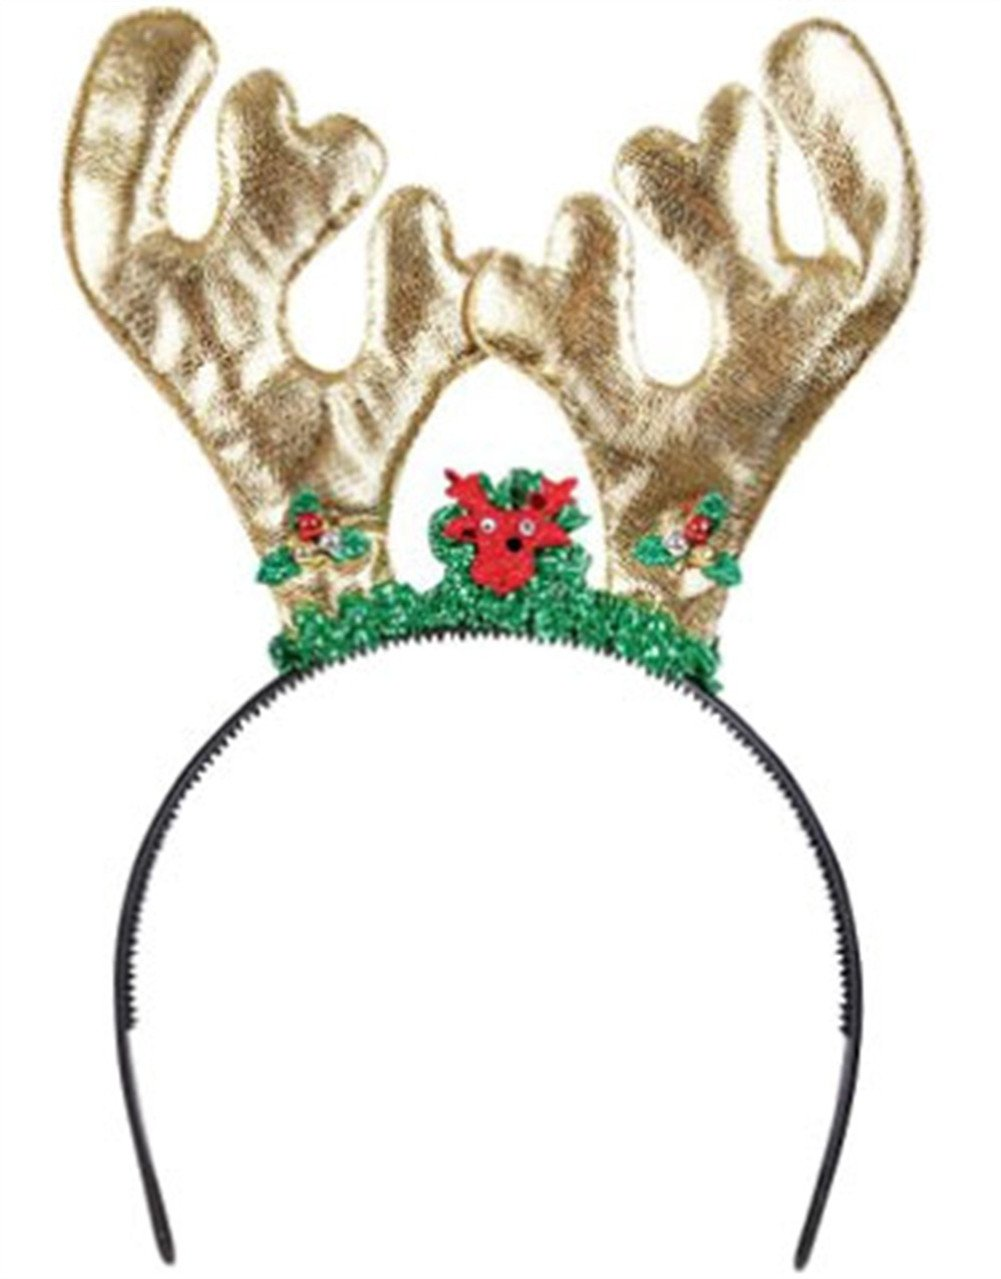 Deluxe New Golden Christmas Costume Reindeer Antlers